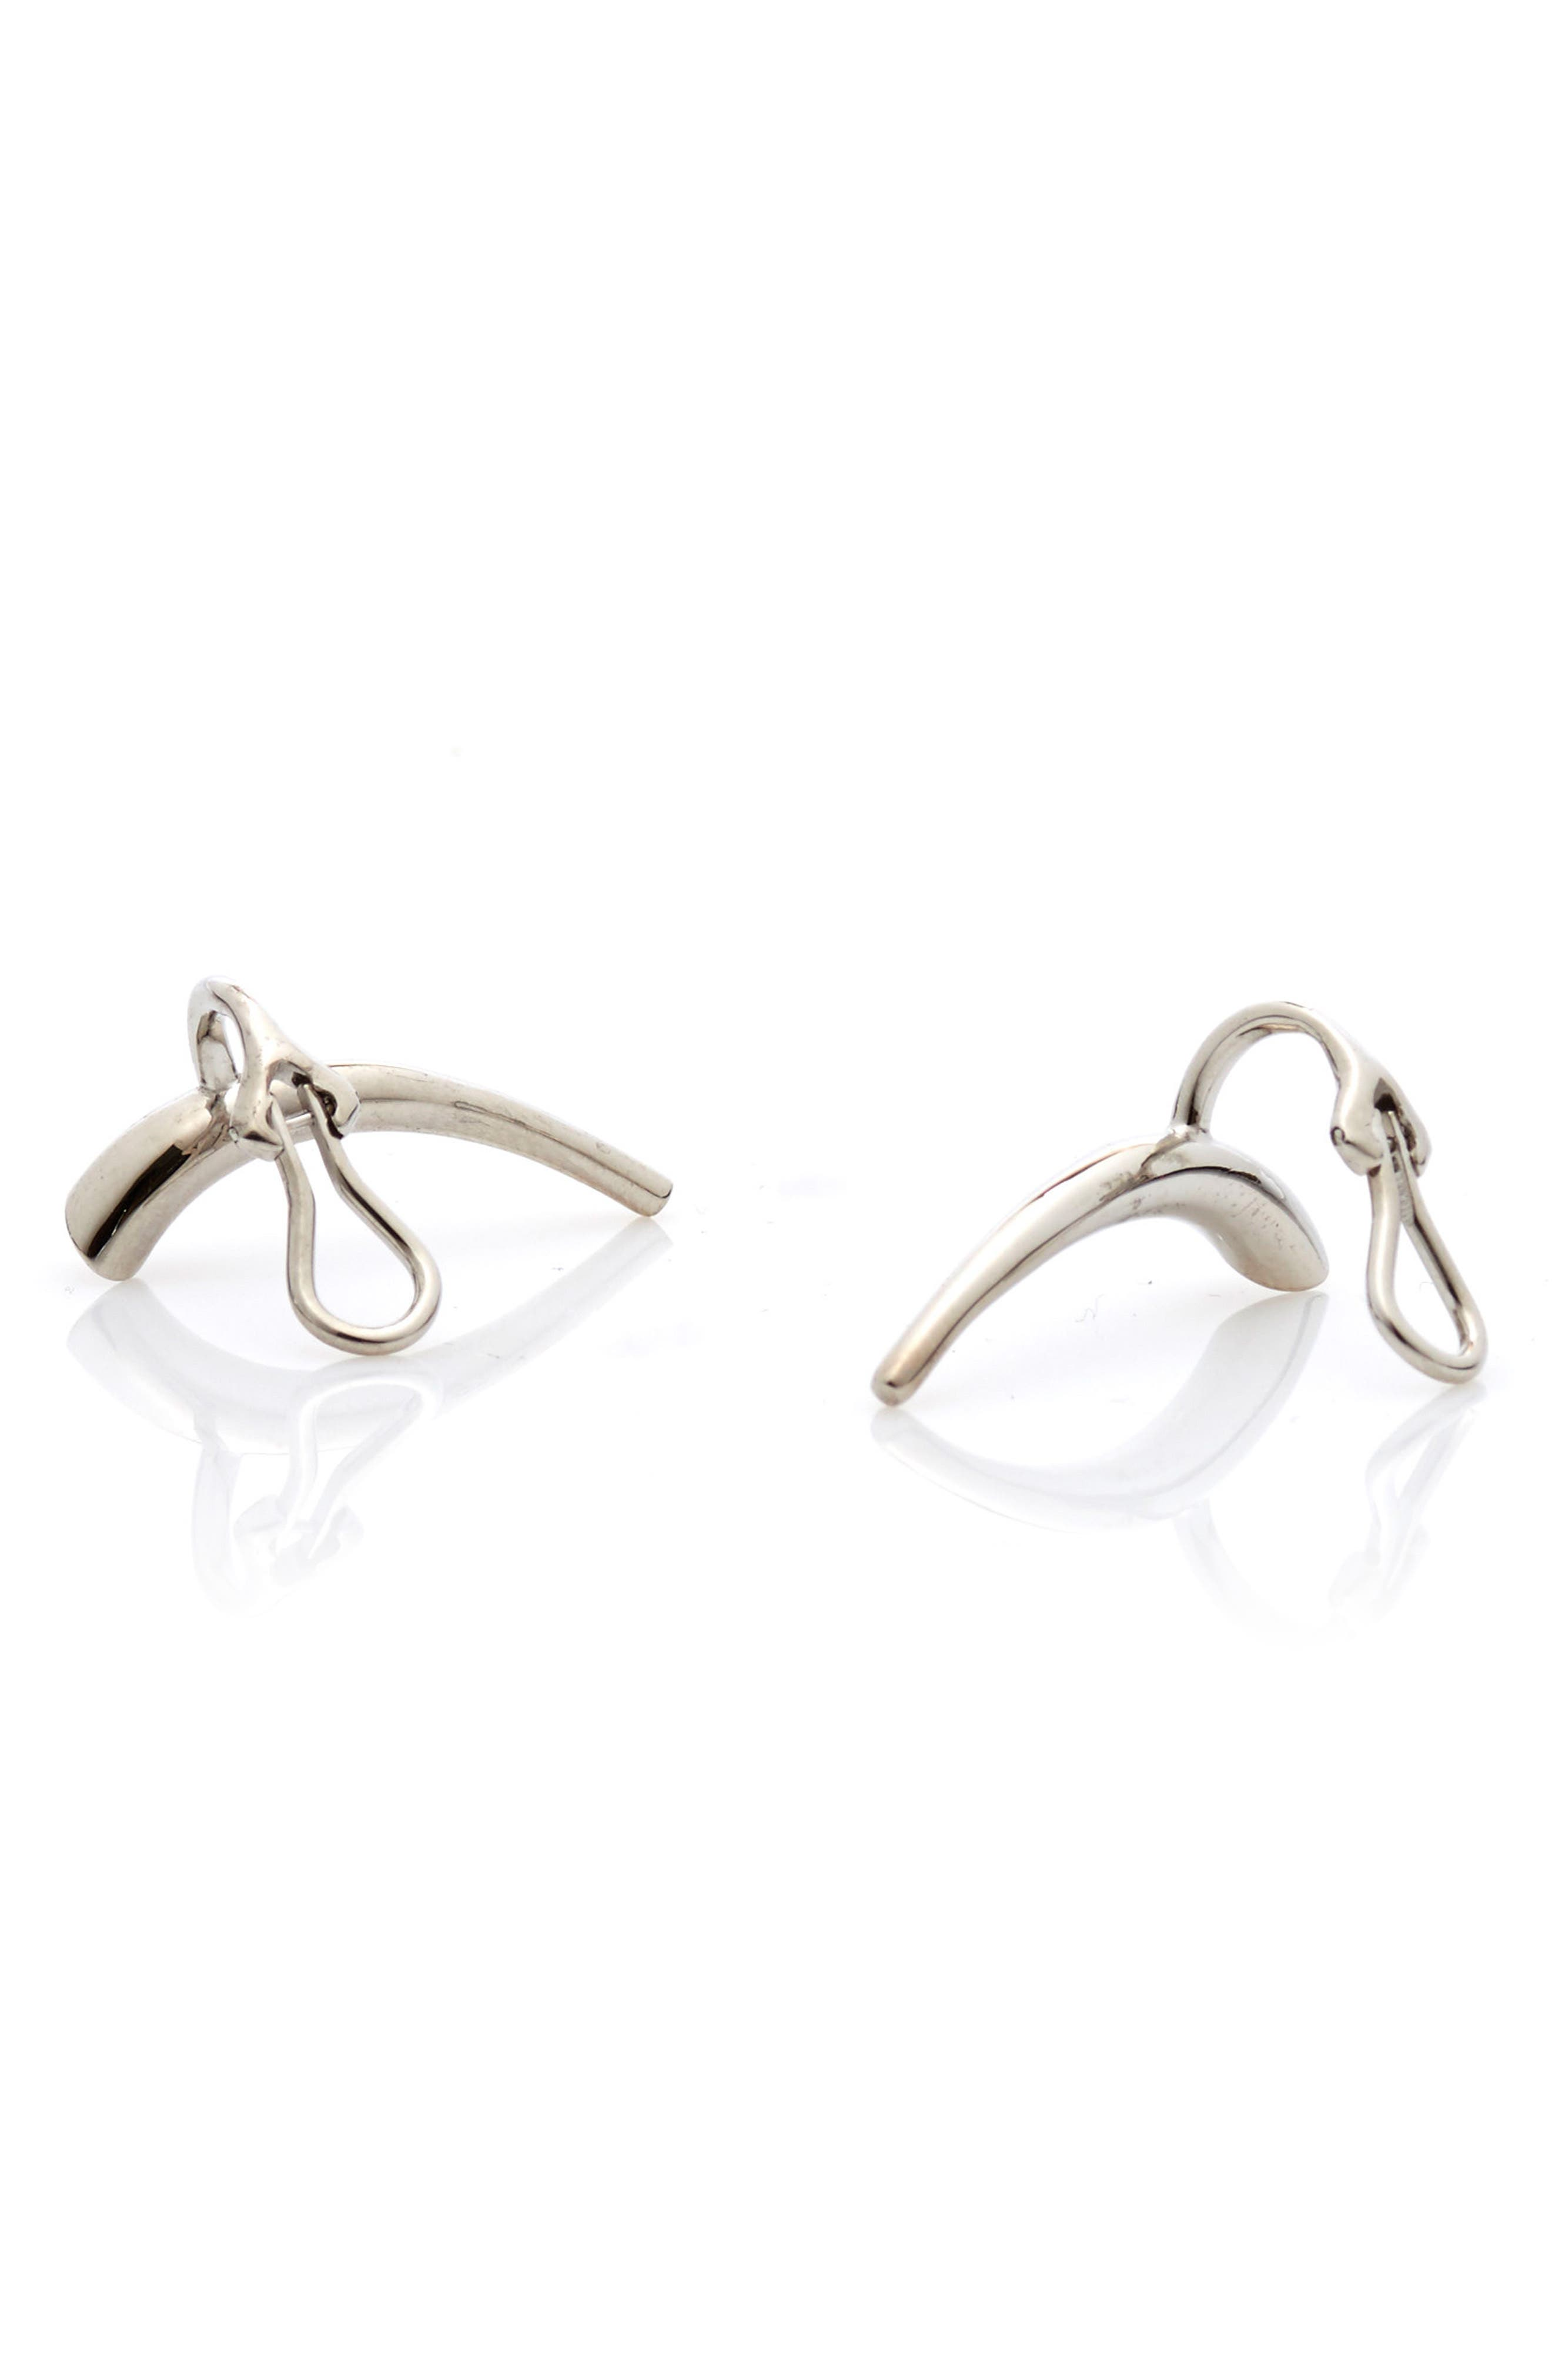 Helix Silver Ear Cuffs,                         Main,                         color, Silver